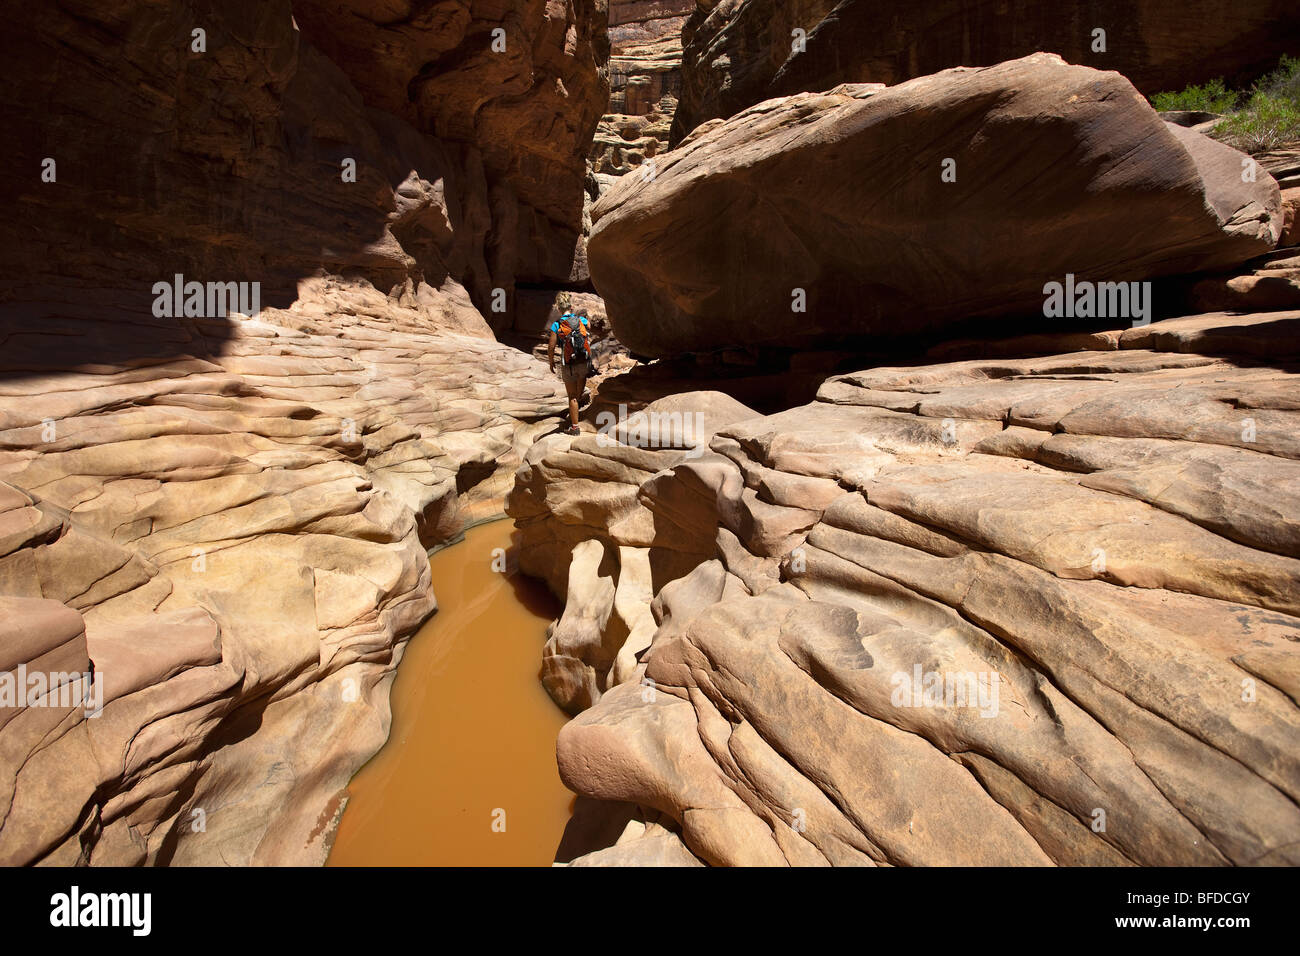 A woman hiking through a canyon with water and interesting rock formations in Utah. - Stock Image